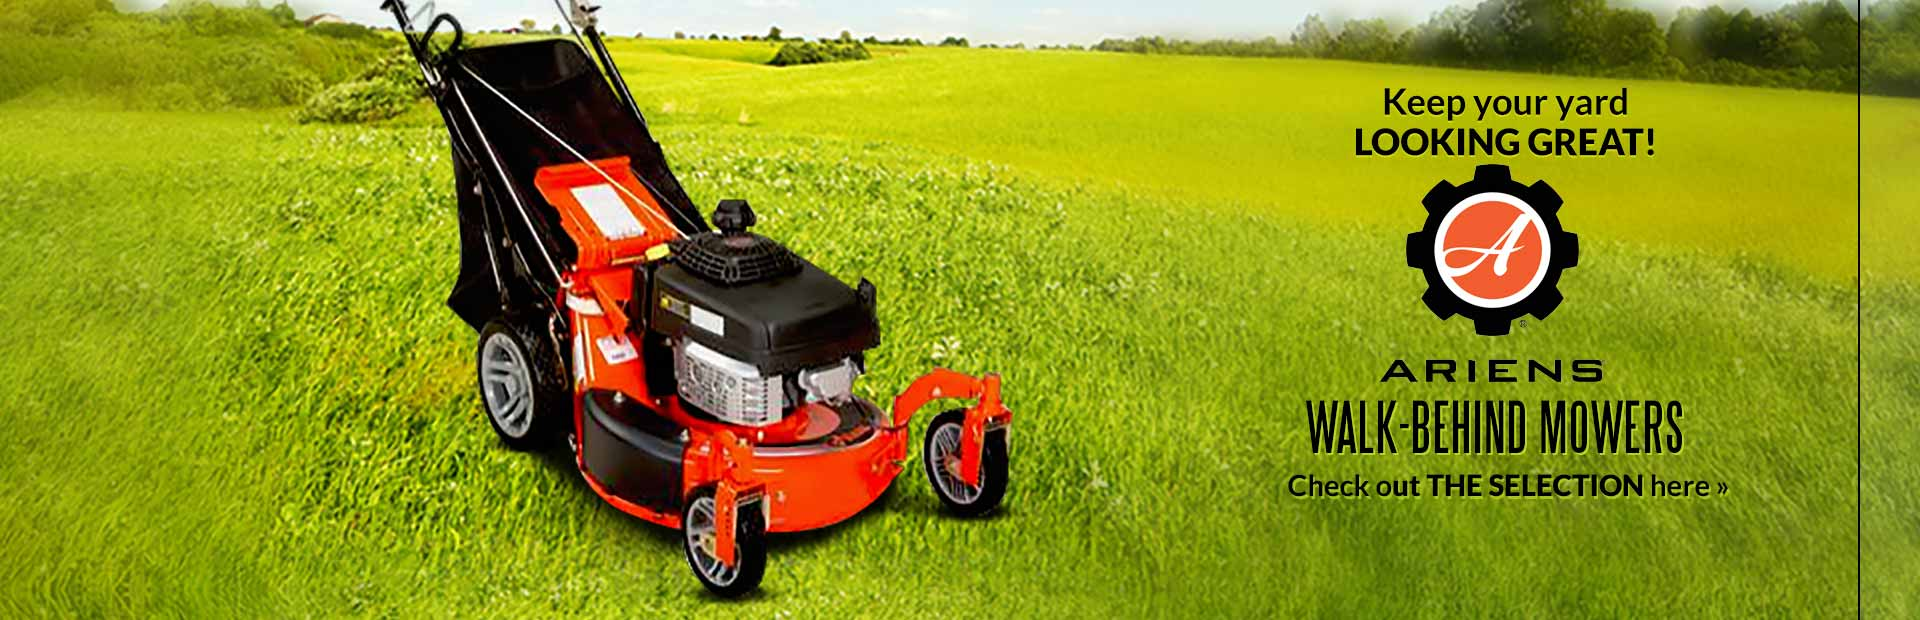 Ariens Walk-Behind Mowers: Click here to view our selection.